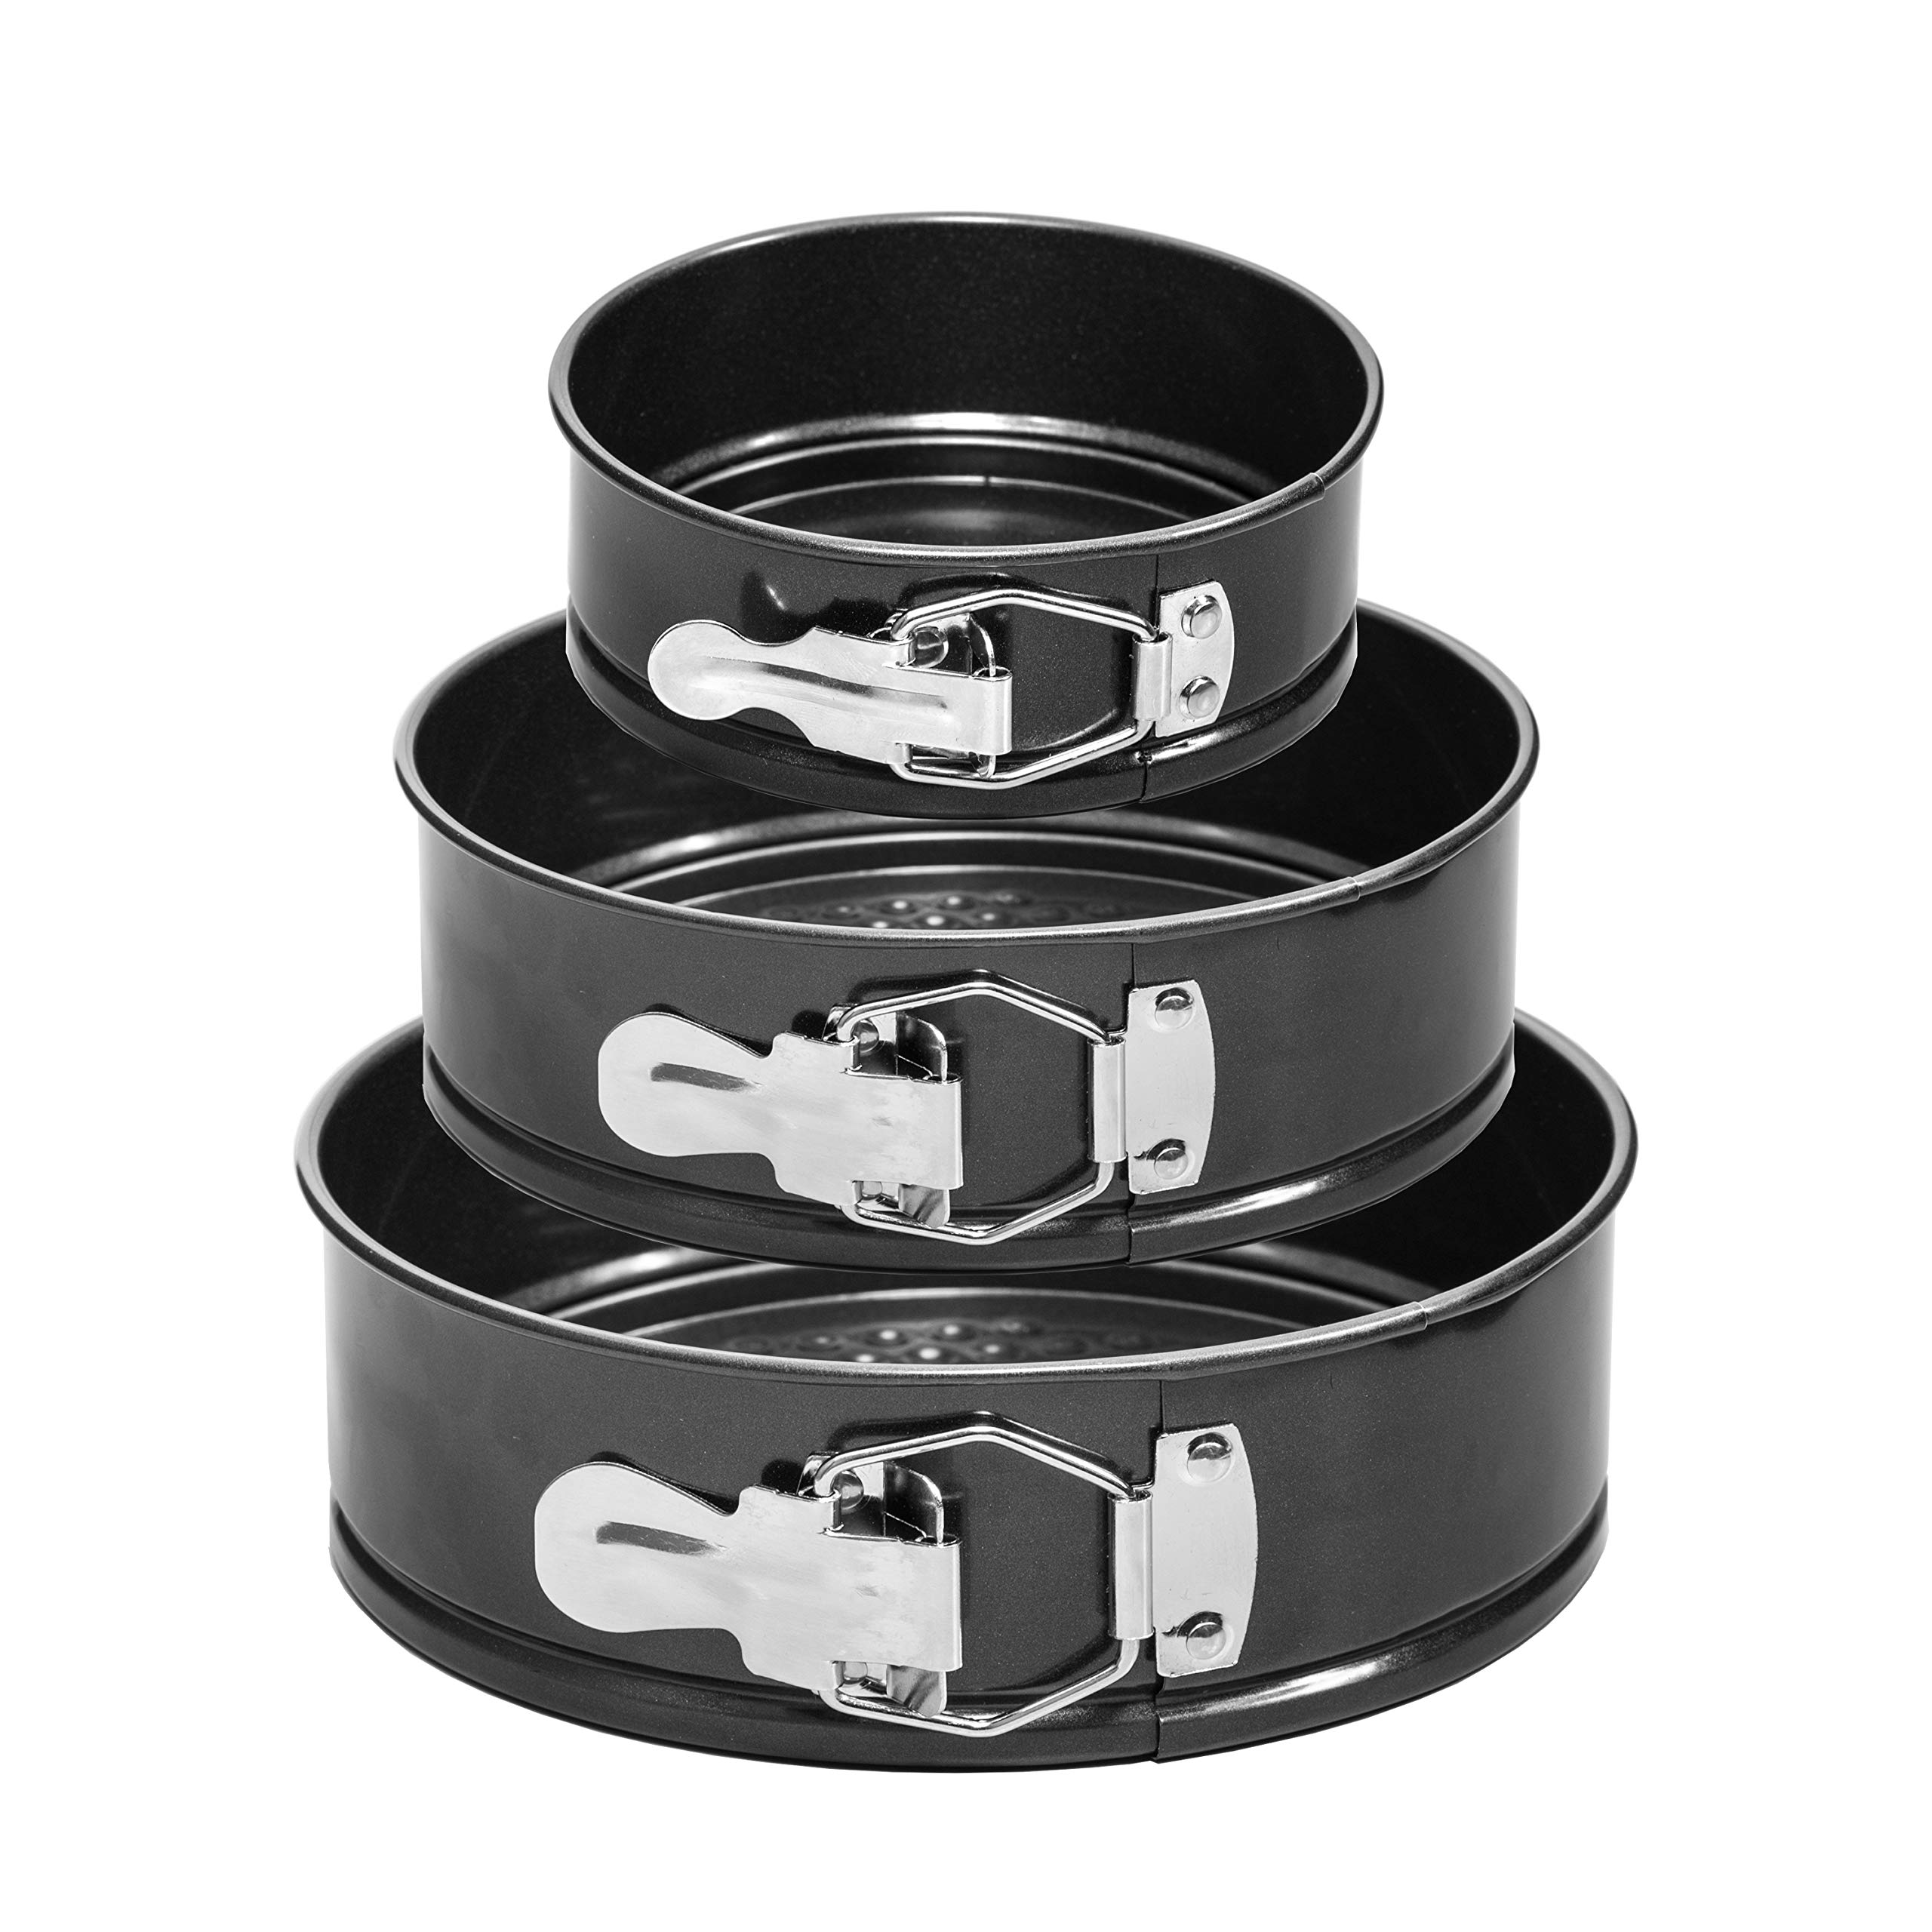 HomeBee Non-Stick Springform Pan Set of 3 (4'', 7'', 9 Inch) | Leakproof Round Baking Pans with Quick Release Latch and Removable Bottom | Cheesecake, Wedding Cake Bakeware Set | Black (3 piece) by HomeBee